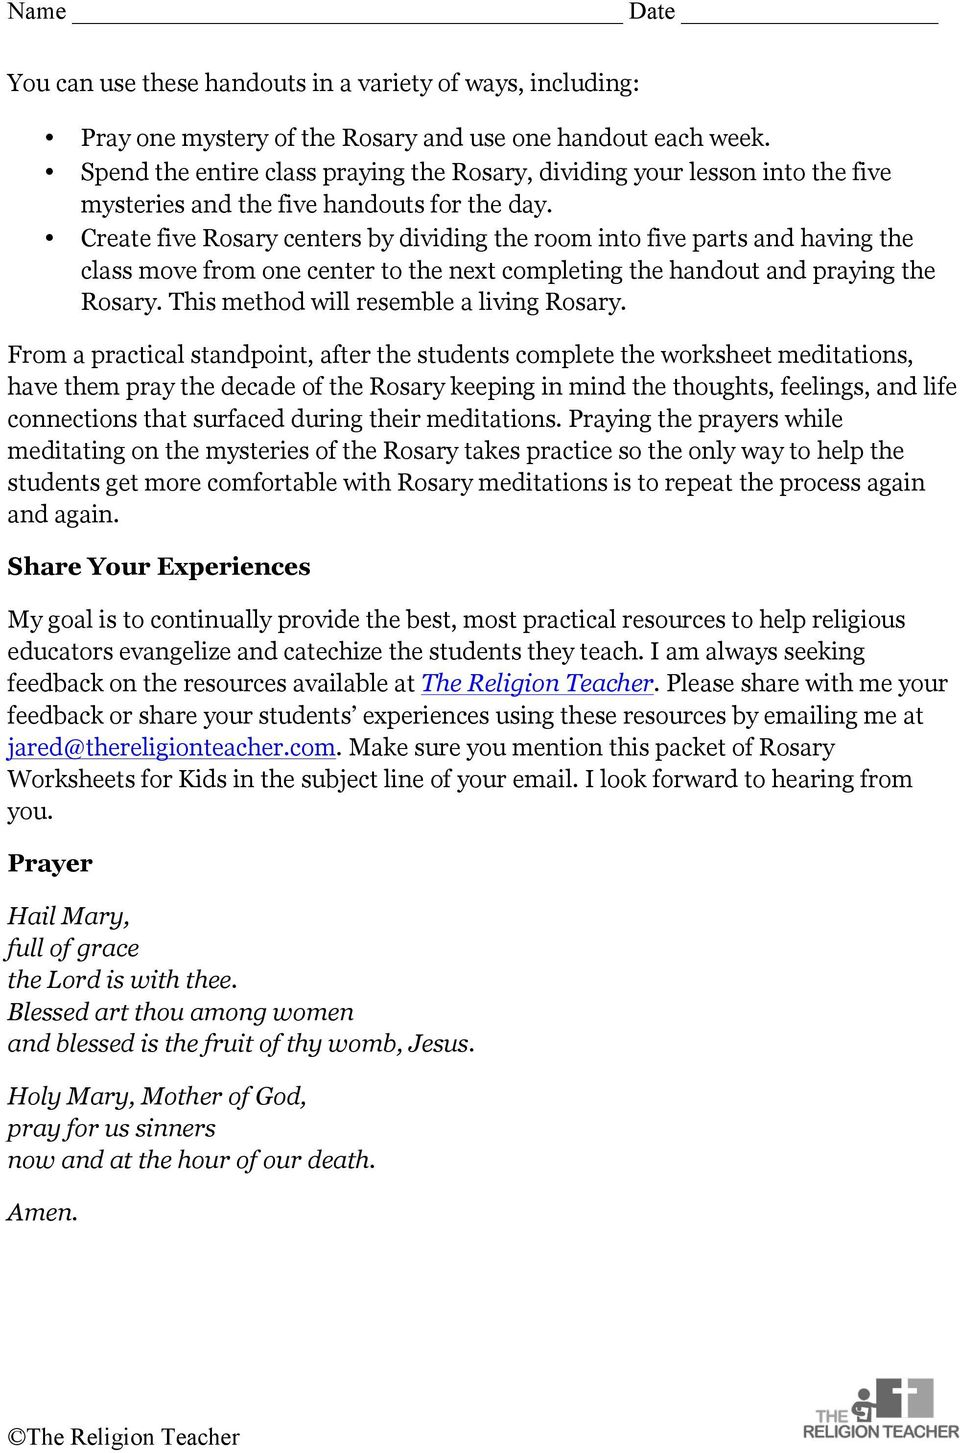 medium resolution of The Religion Teacher s Rosary Worksheets for Kids - PDF Free Download